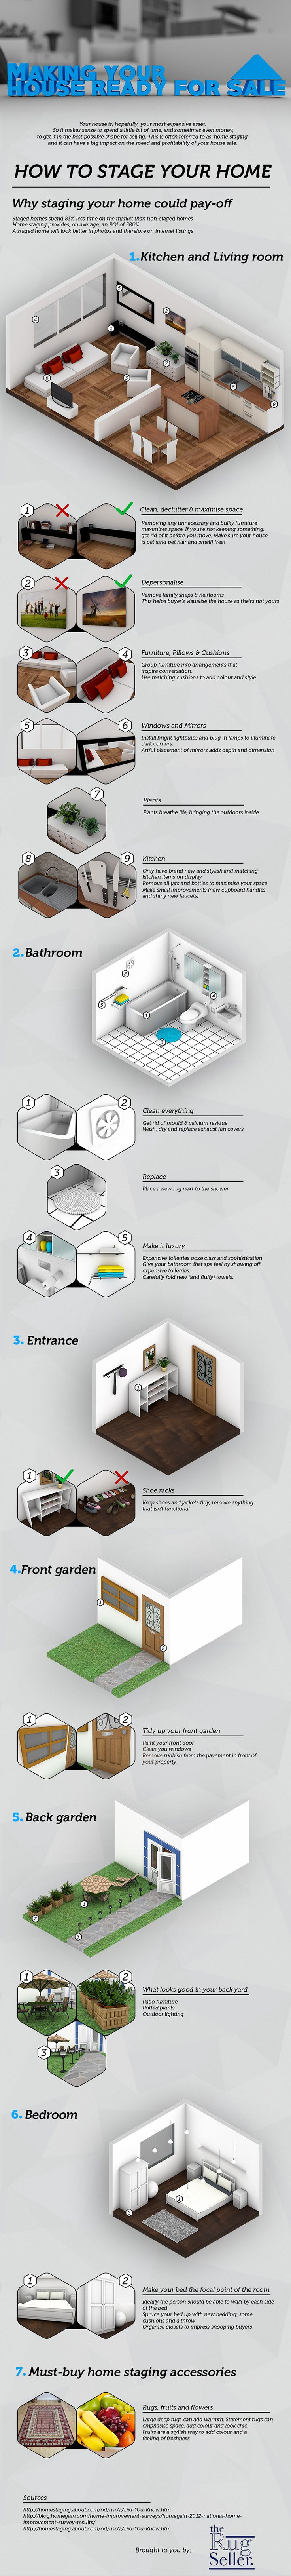 11 best Home Staging Ideas images on Pinterest | Centerpiece ideas ...